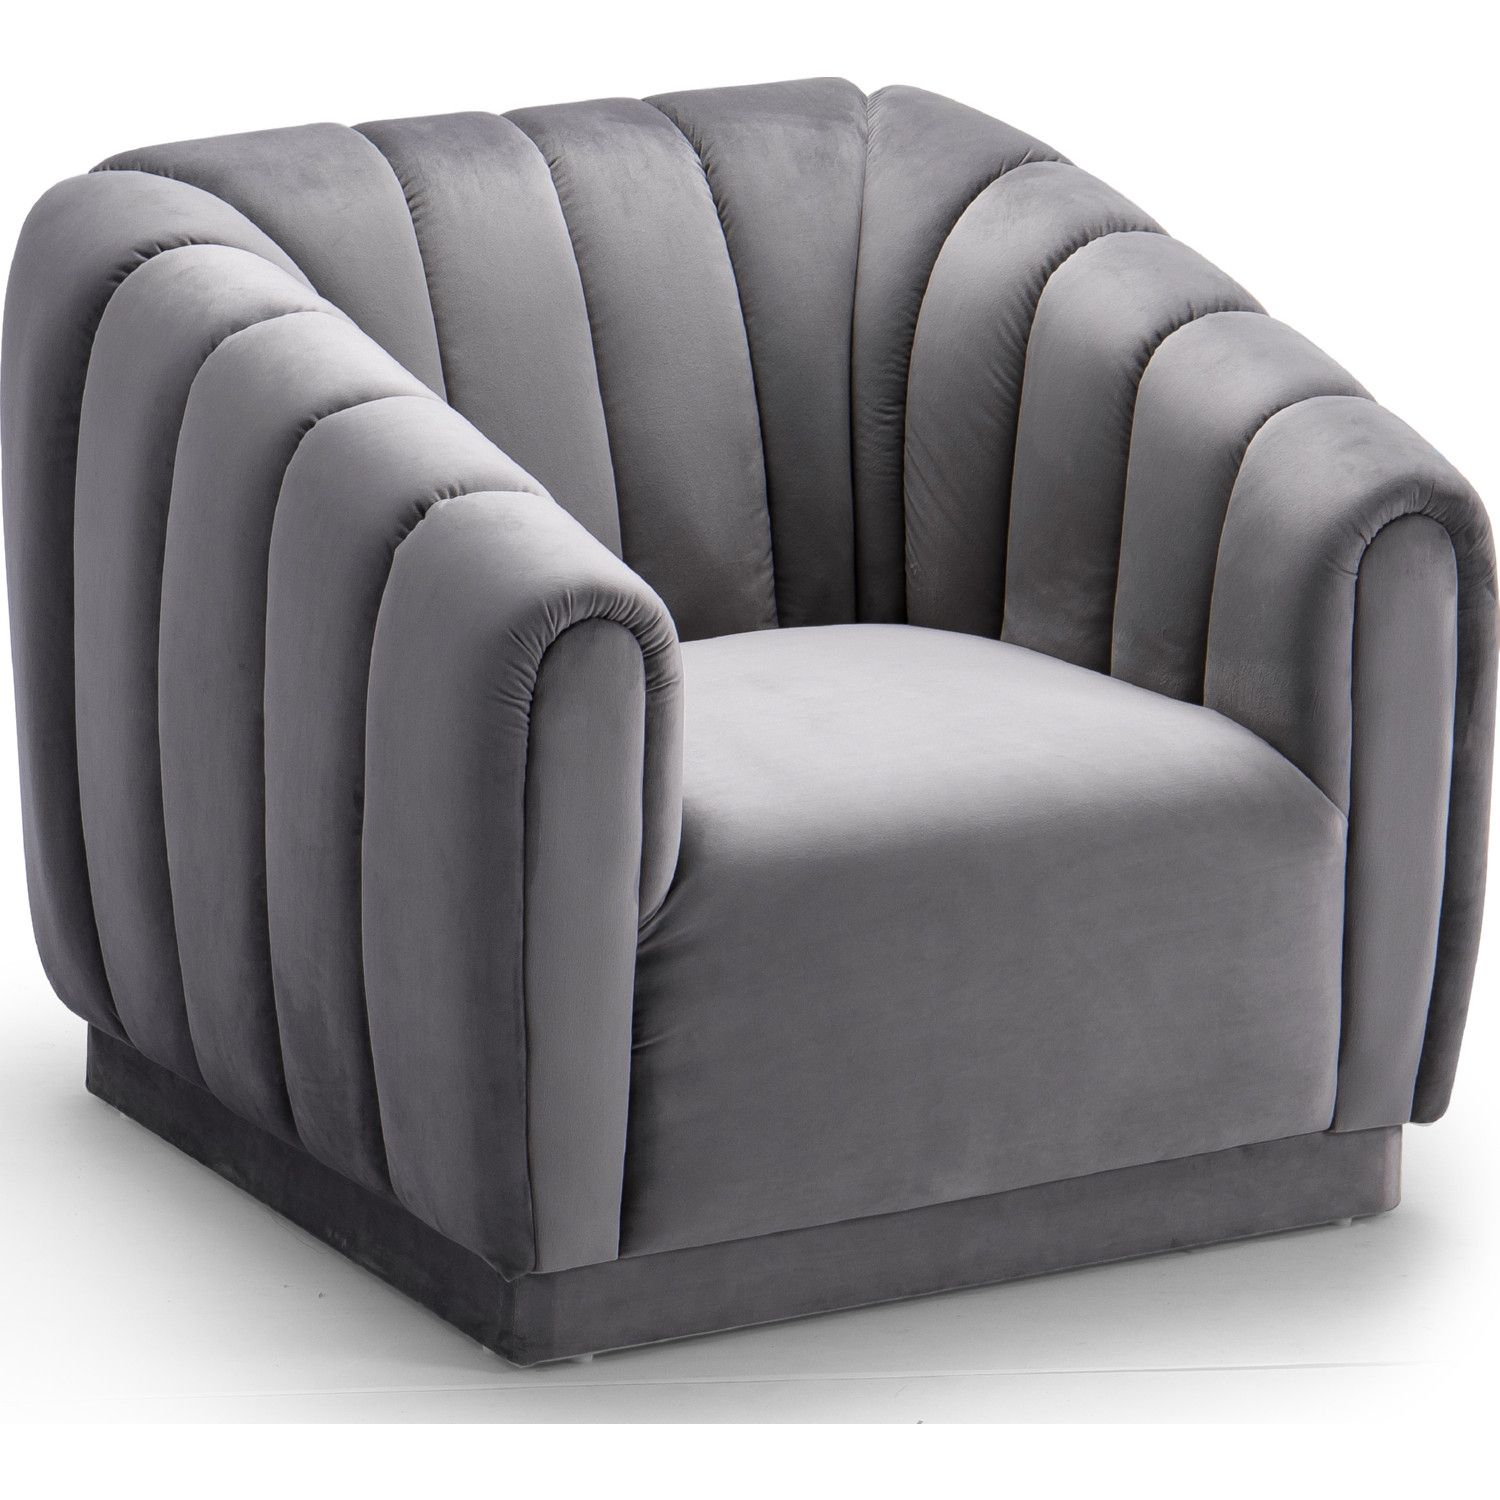 Chic Home Fcc9241 Dr Van Gogh Club Chair Channel Tufted Grey Velvet In 2020 Luxury Chairs Chic Home Club Chairs